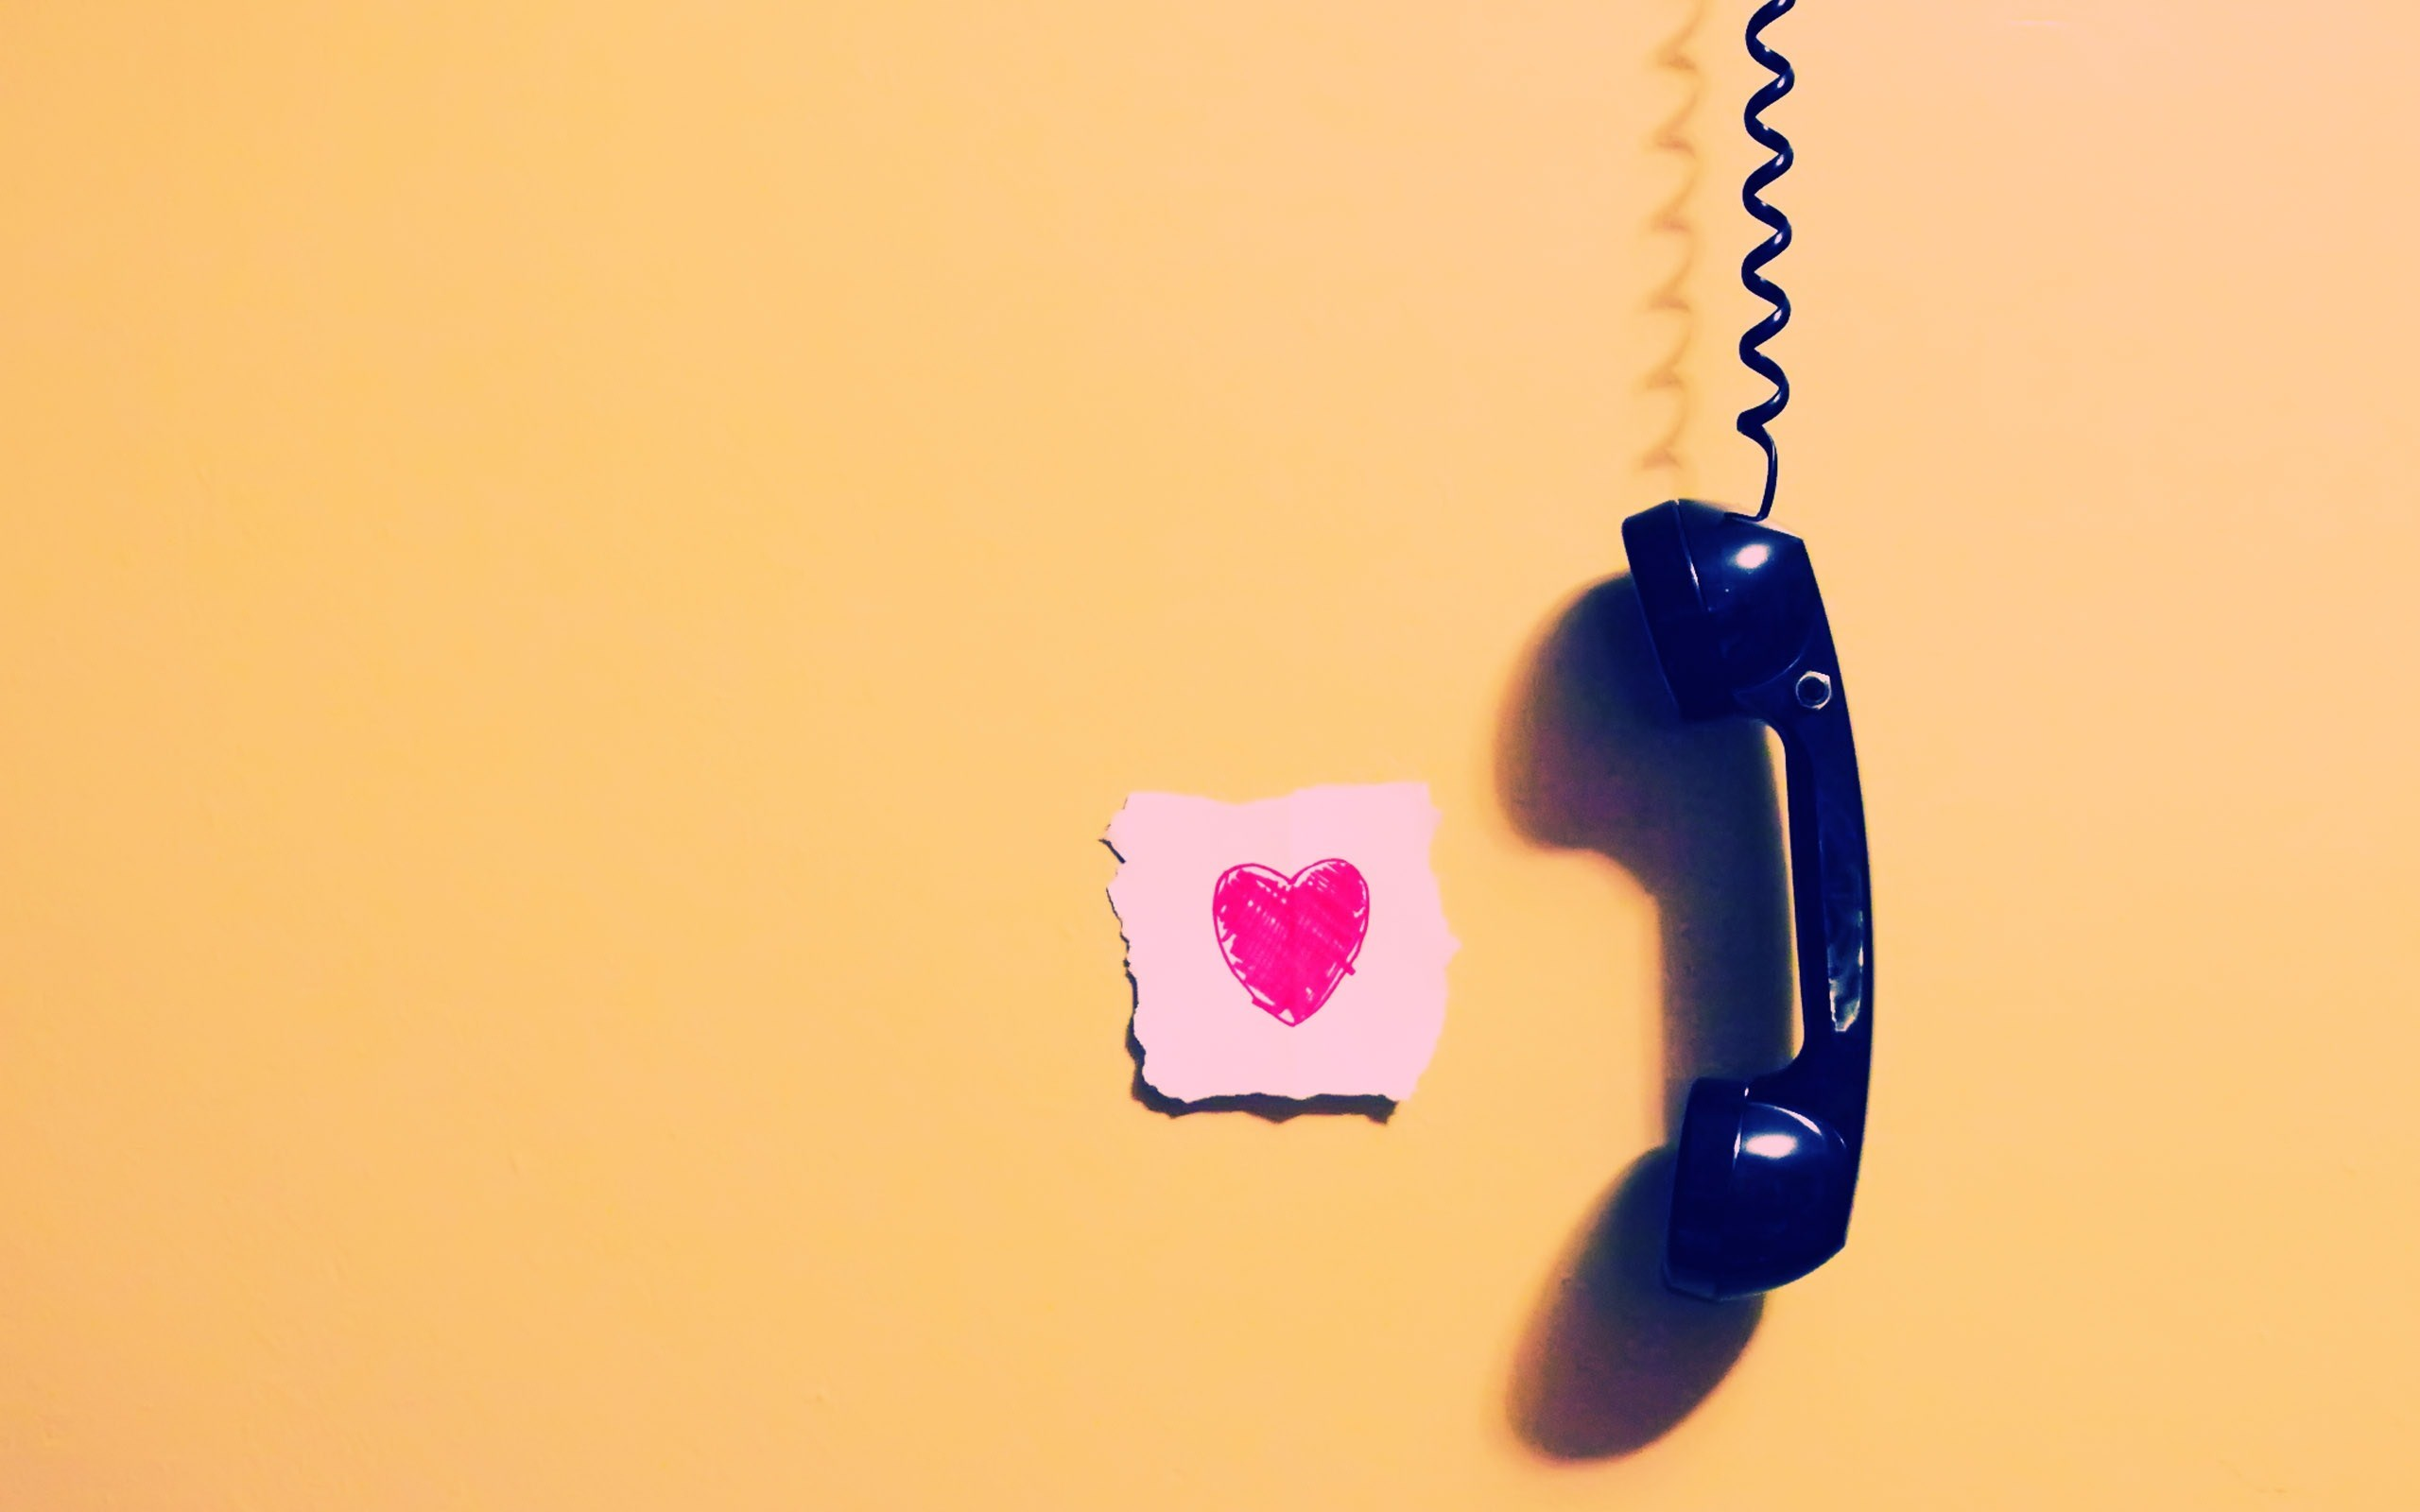 Love Wallpaper For My Phone : calling My Girlfriend Pink Heart Love wallpaper 2560x1600 #27927